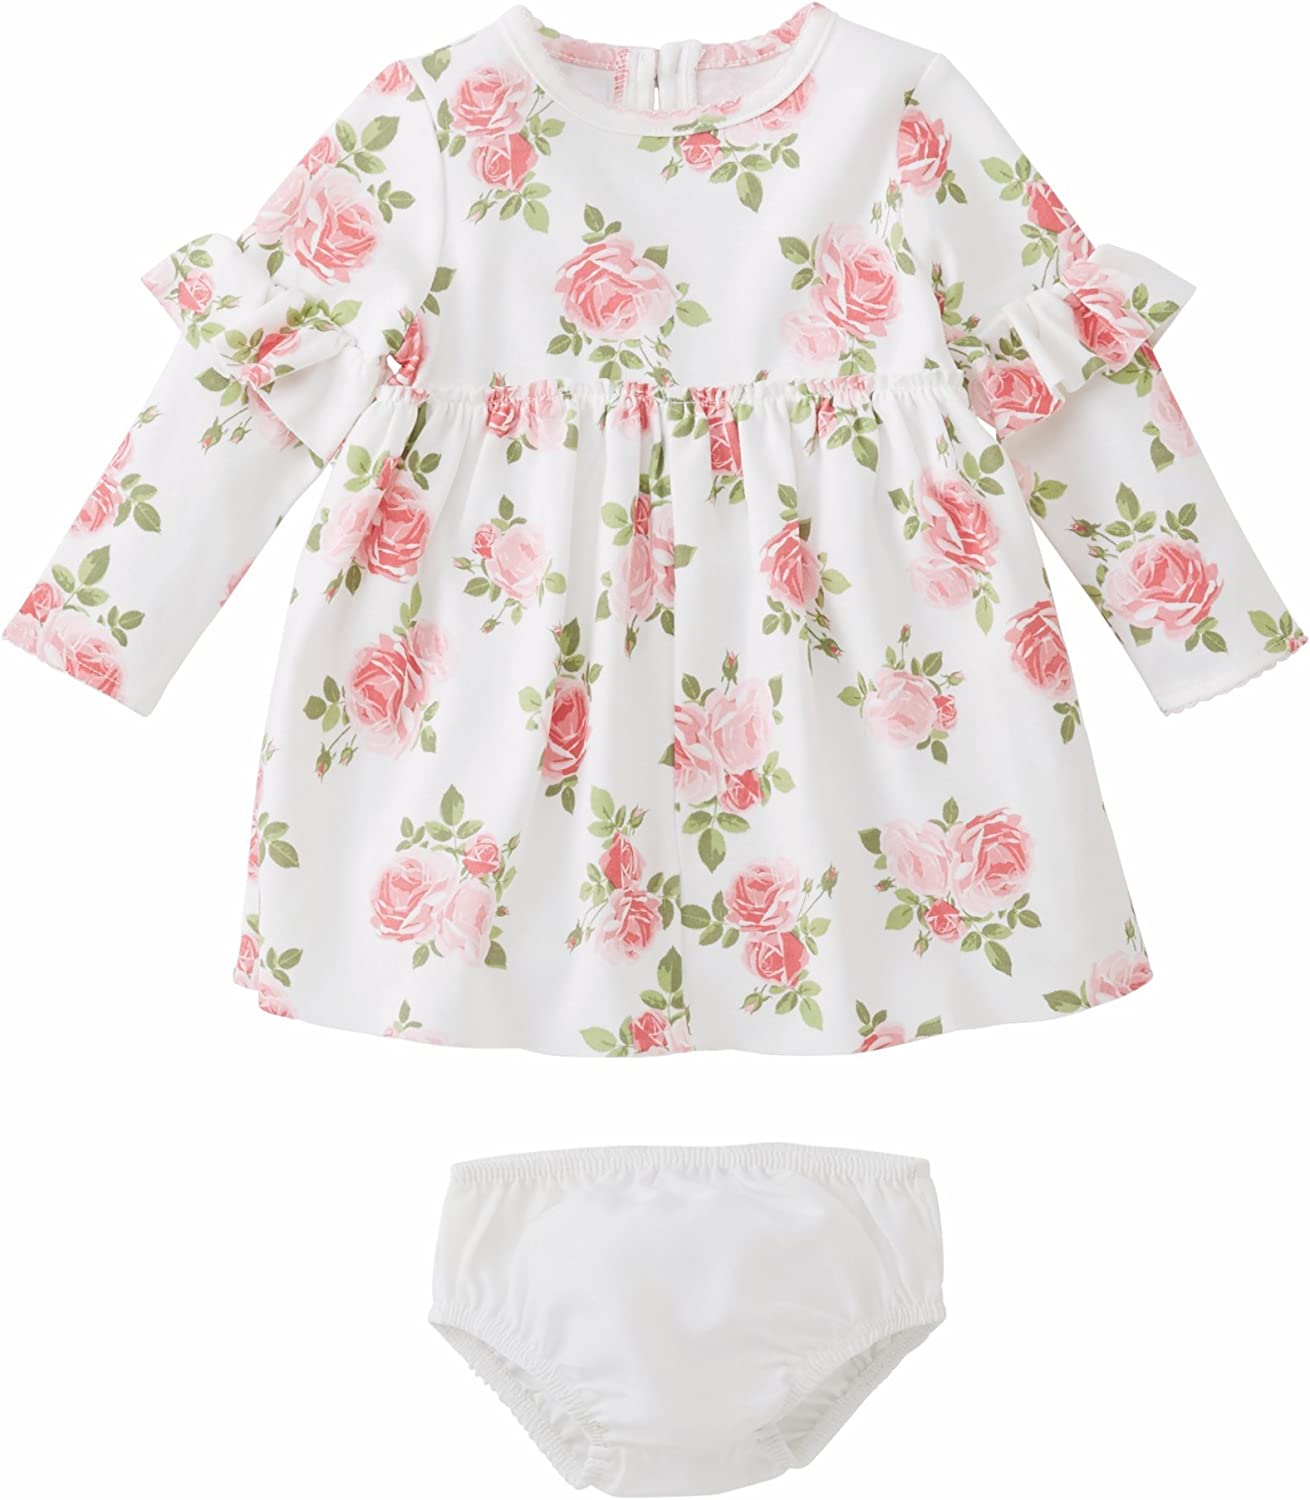 Mud Pie Pink Flamingo Collection Floral Print Bubble Summer Shorts Set Girls New